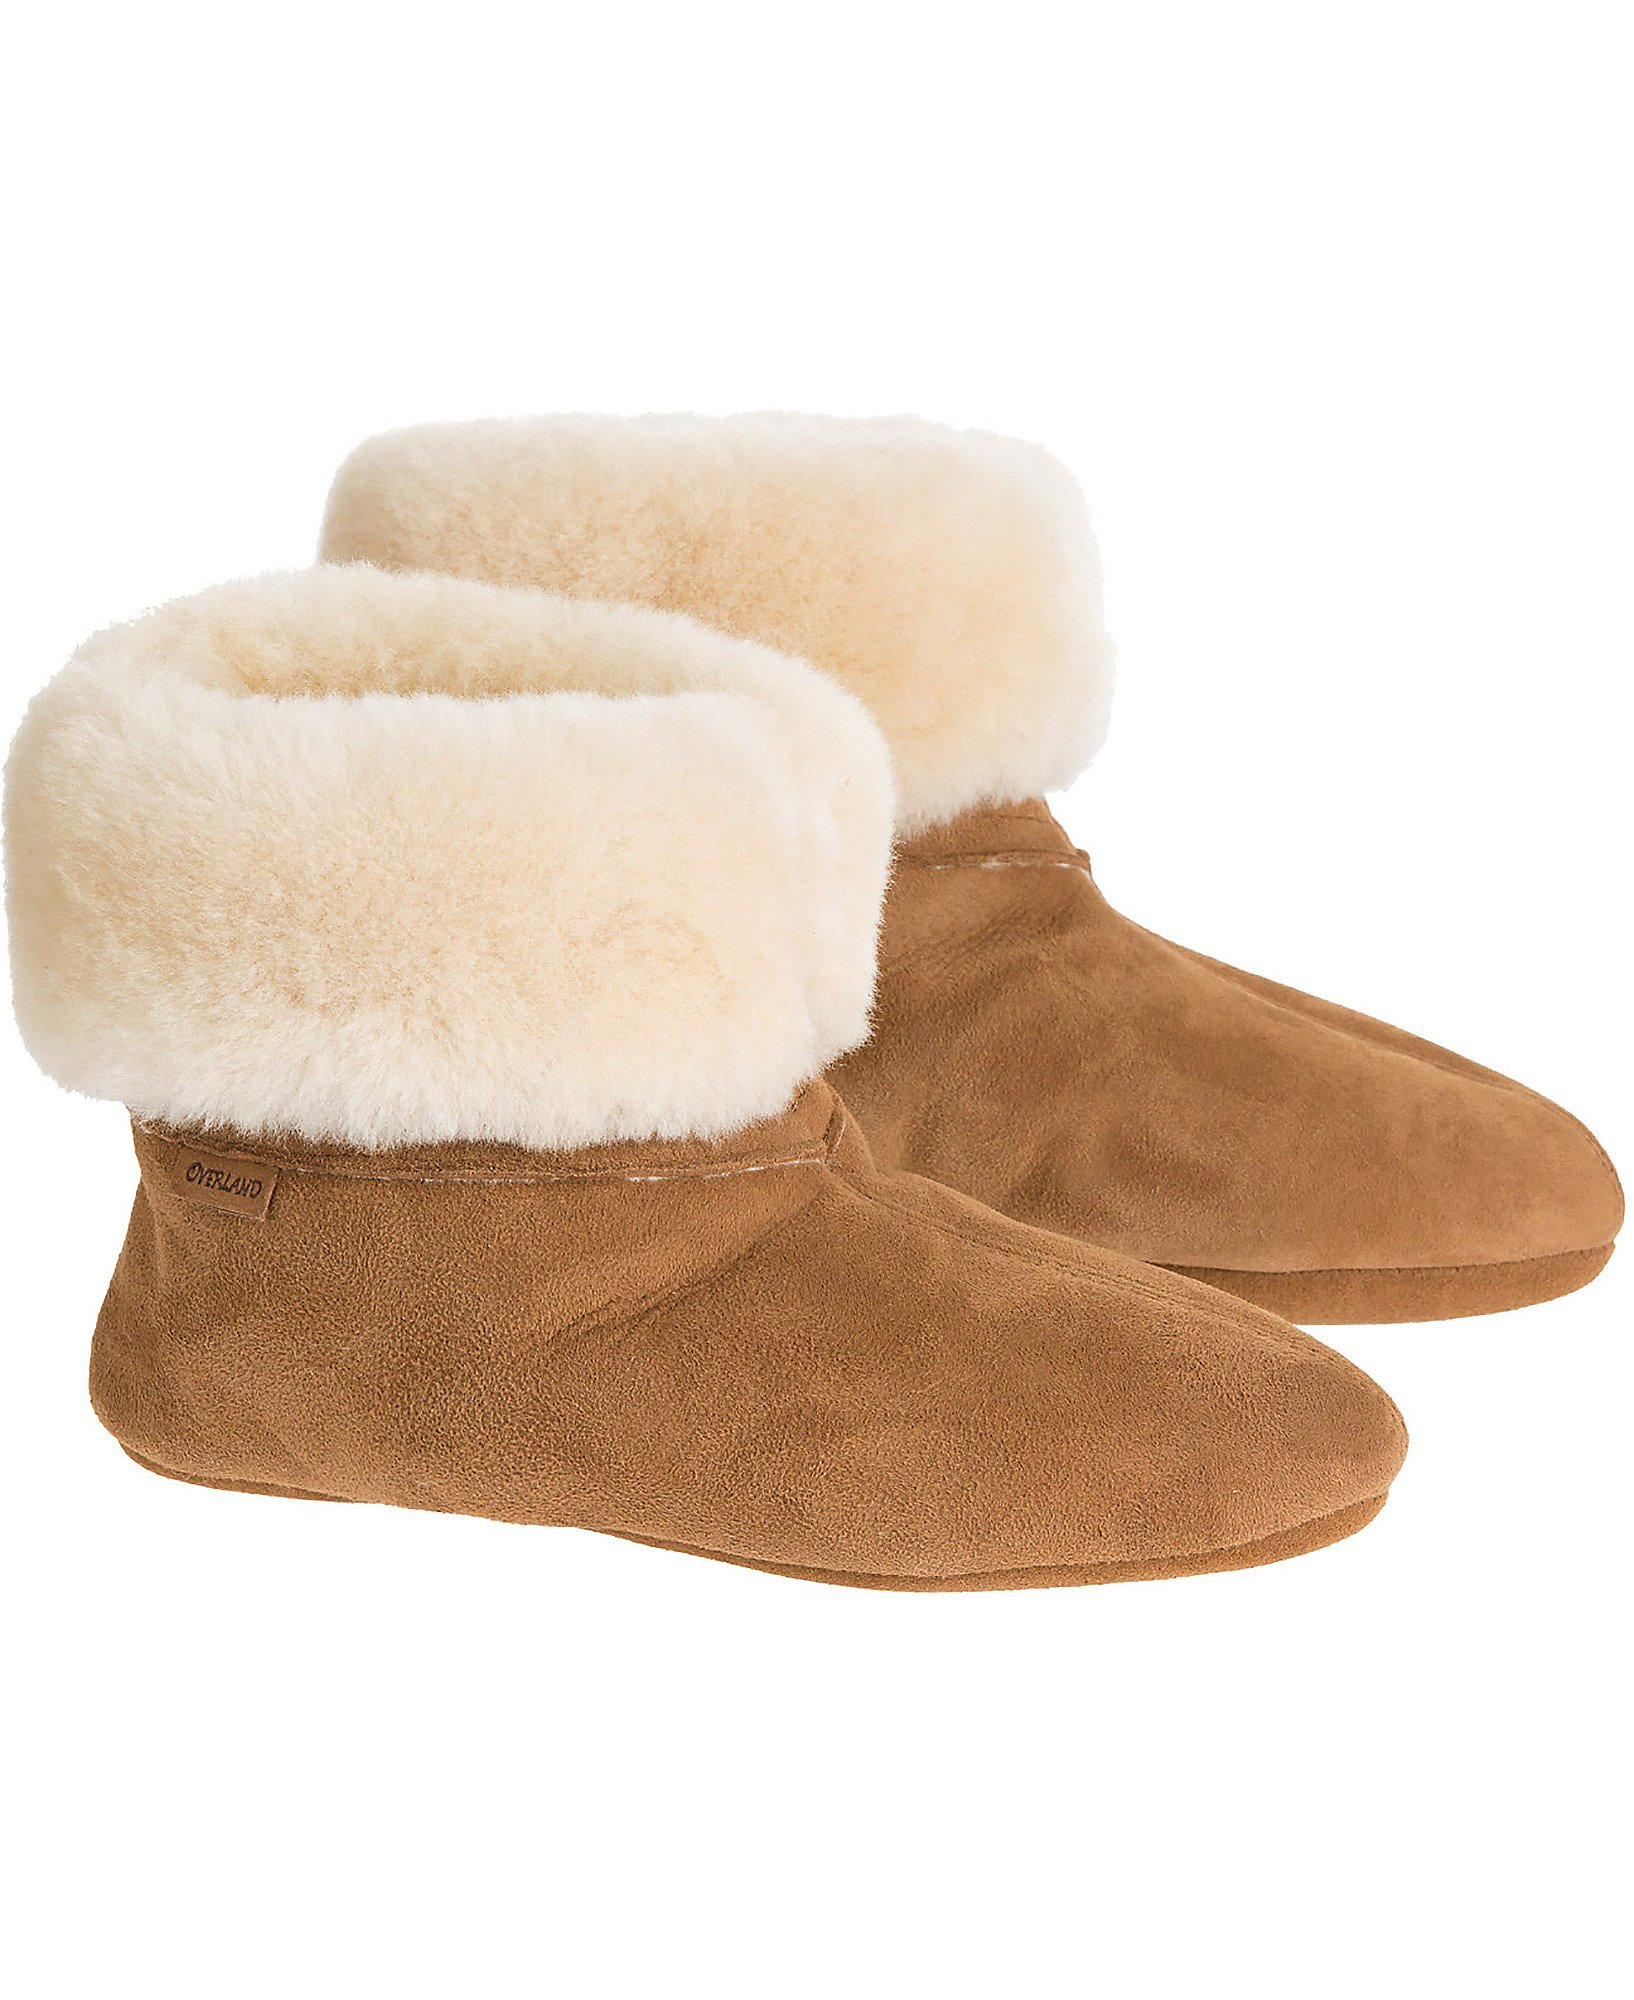 Women's Overland Lily High-Top Sheepskin Slippers, Chestnut, Size 12